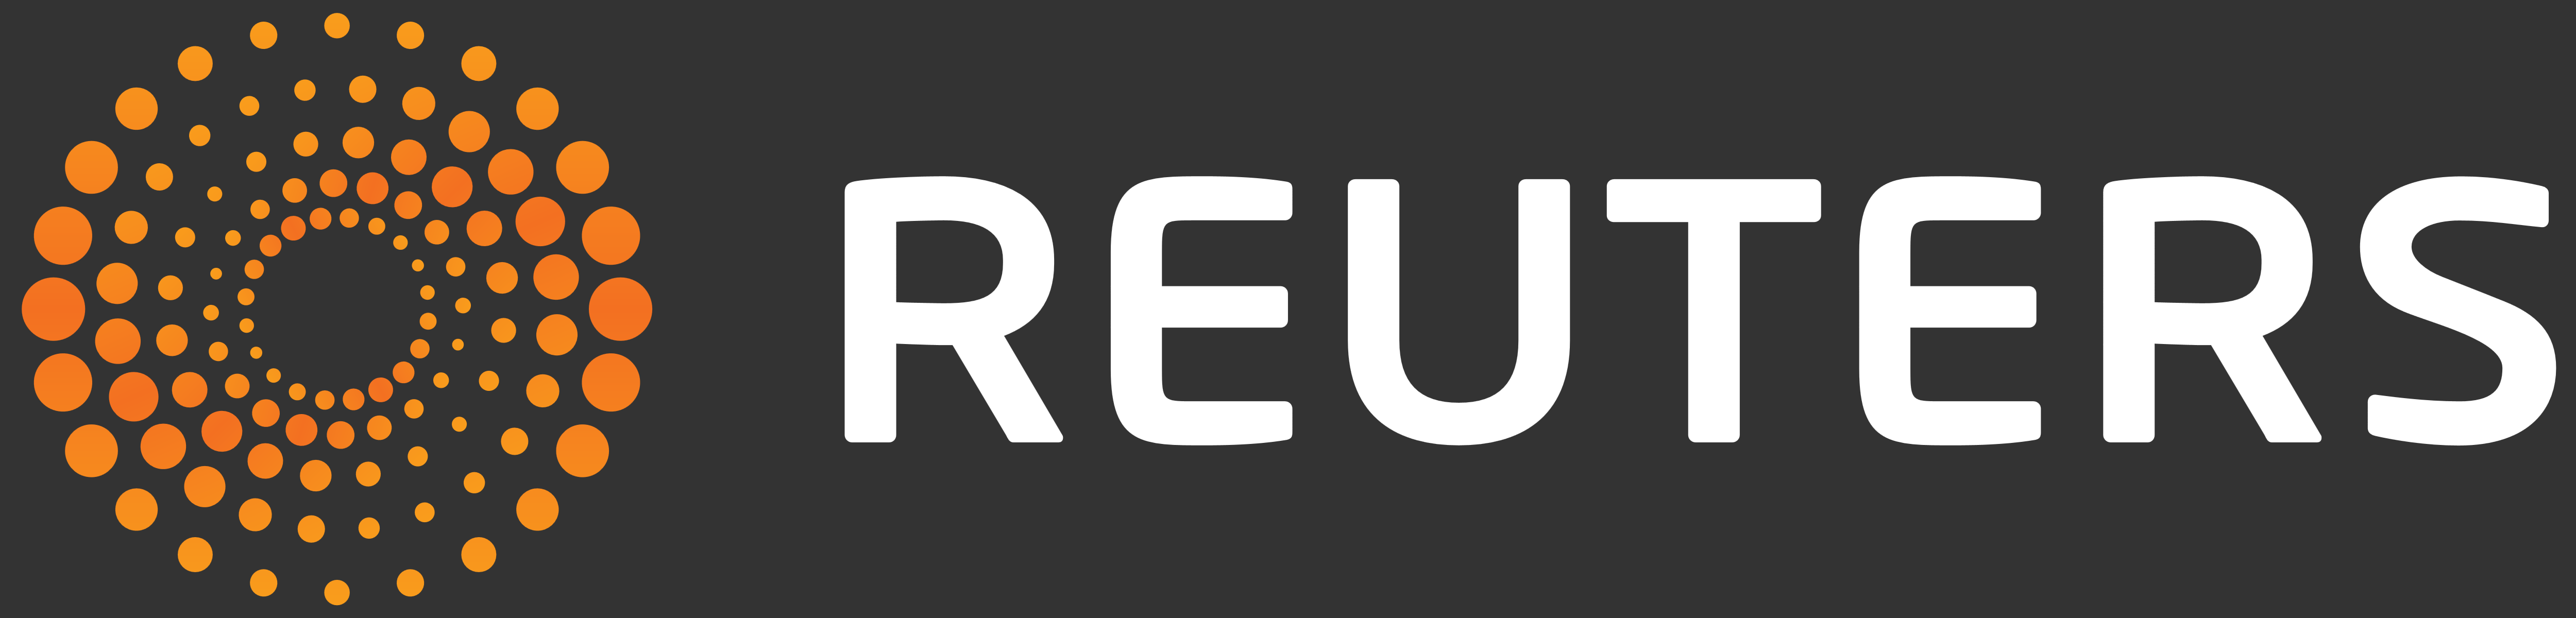 Image result for reuters logo